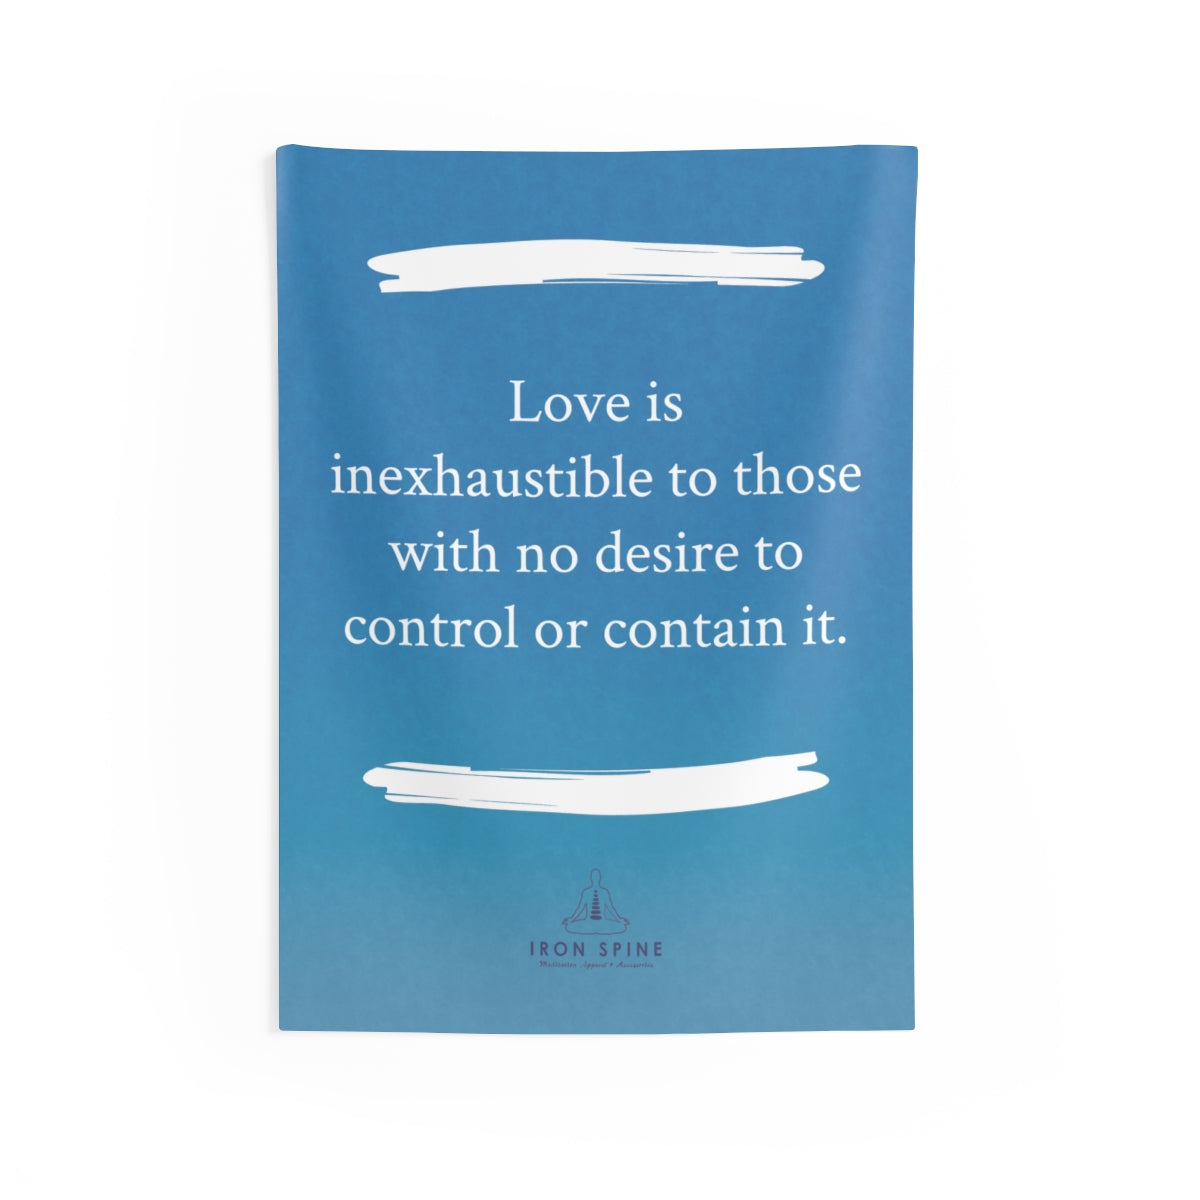 """Love is  inexhaustible to those with no desire to control or contain it."""